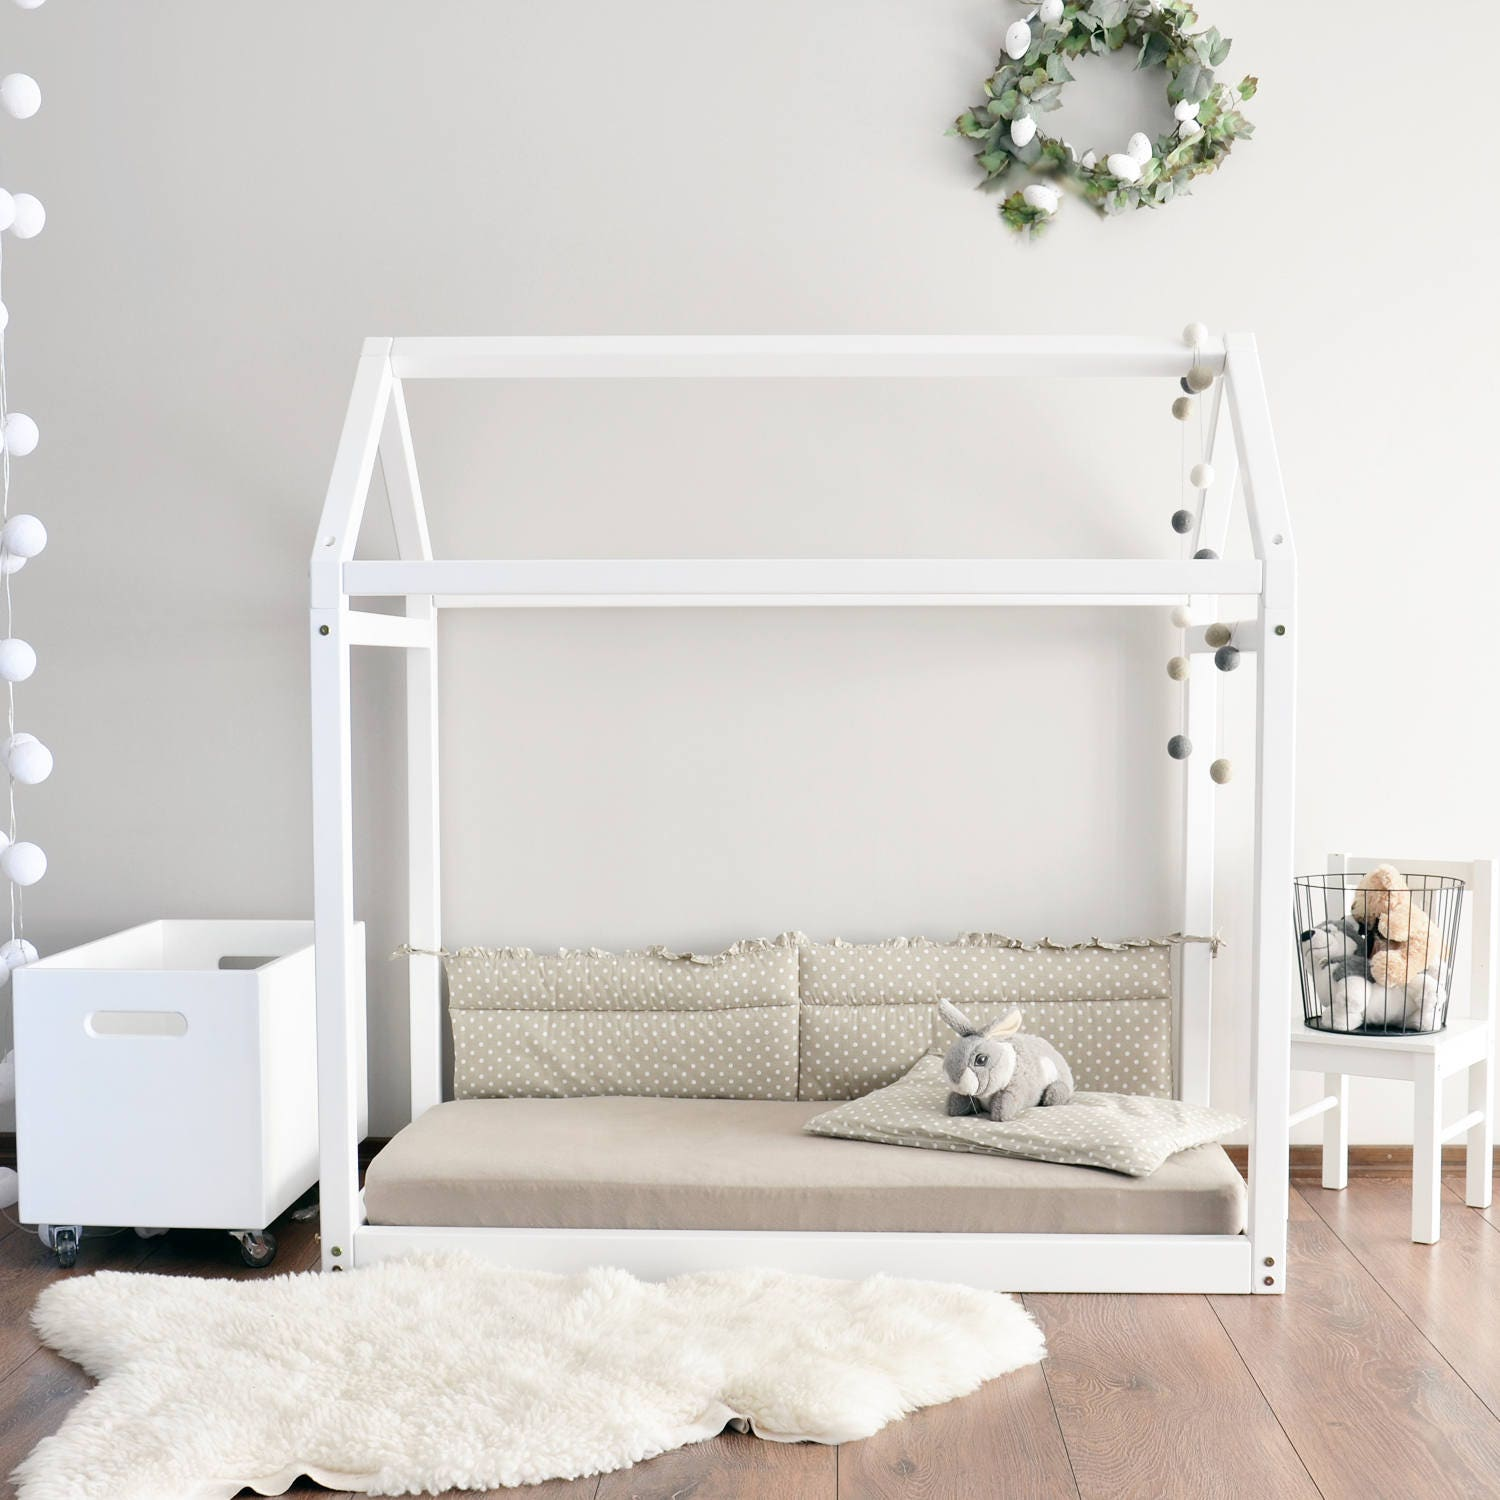 Full size Toddler bed Montessori house bed frame baby bed